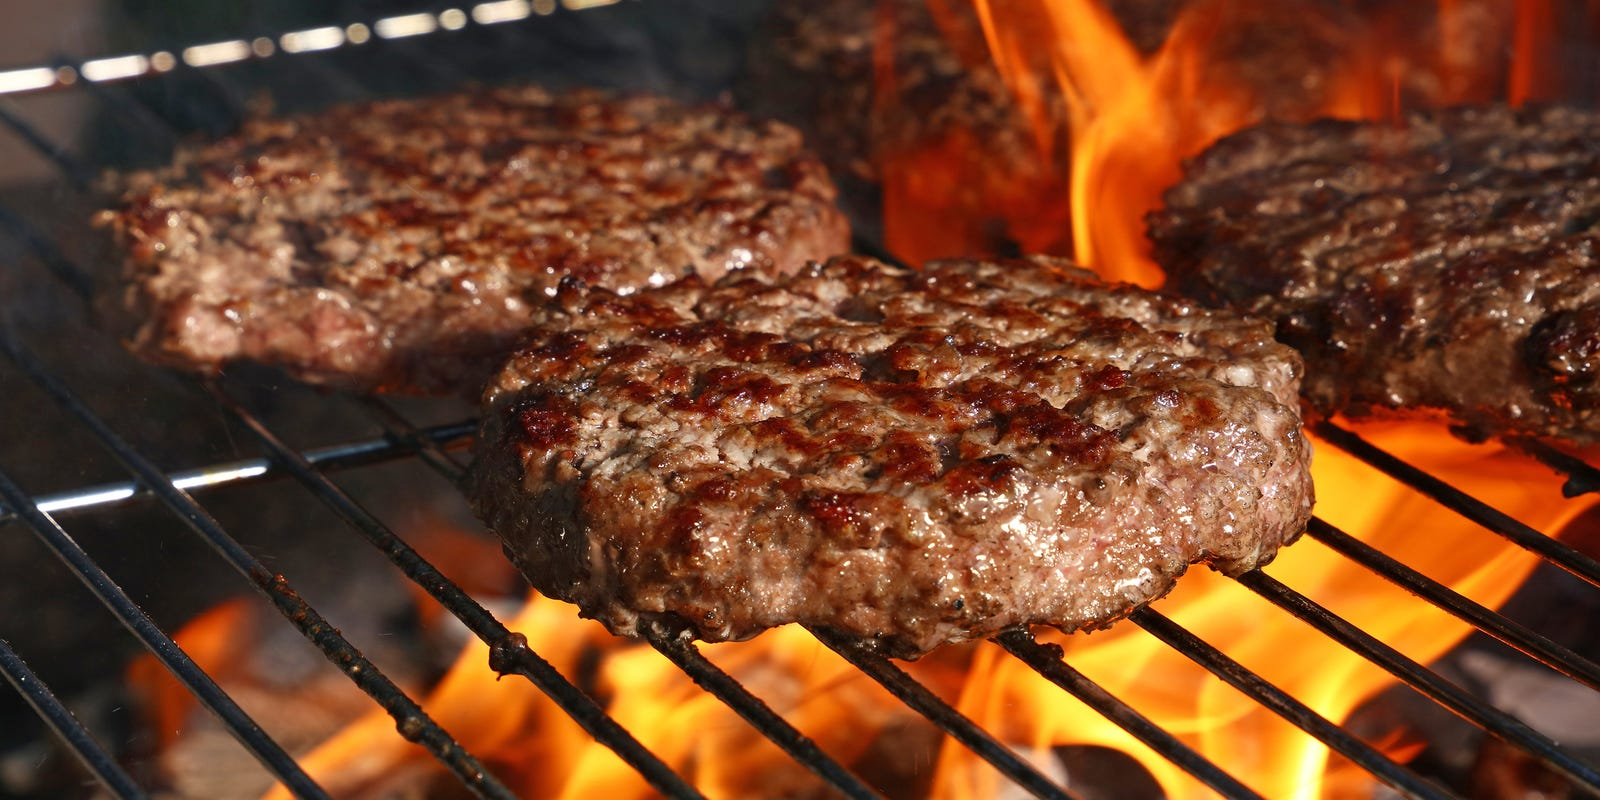 Fourth of July barbecue food safety: Grilling your burgers wrong could kill you this Independence Day